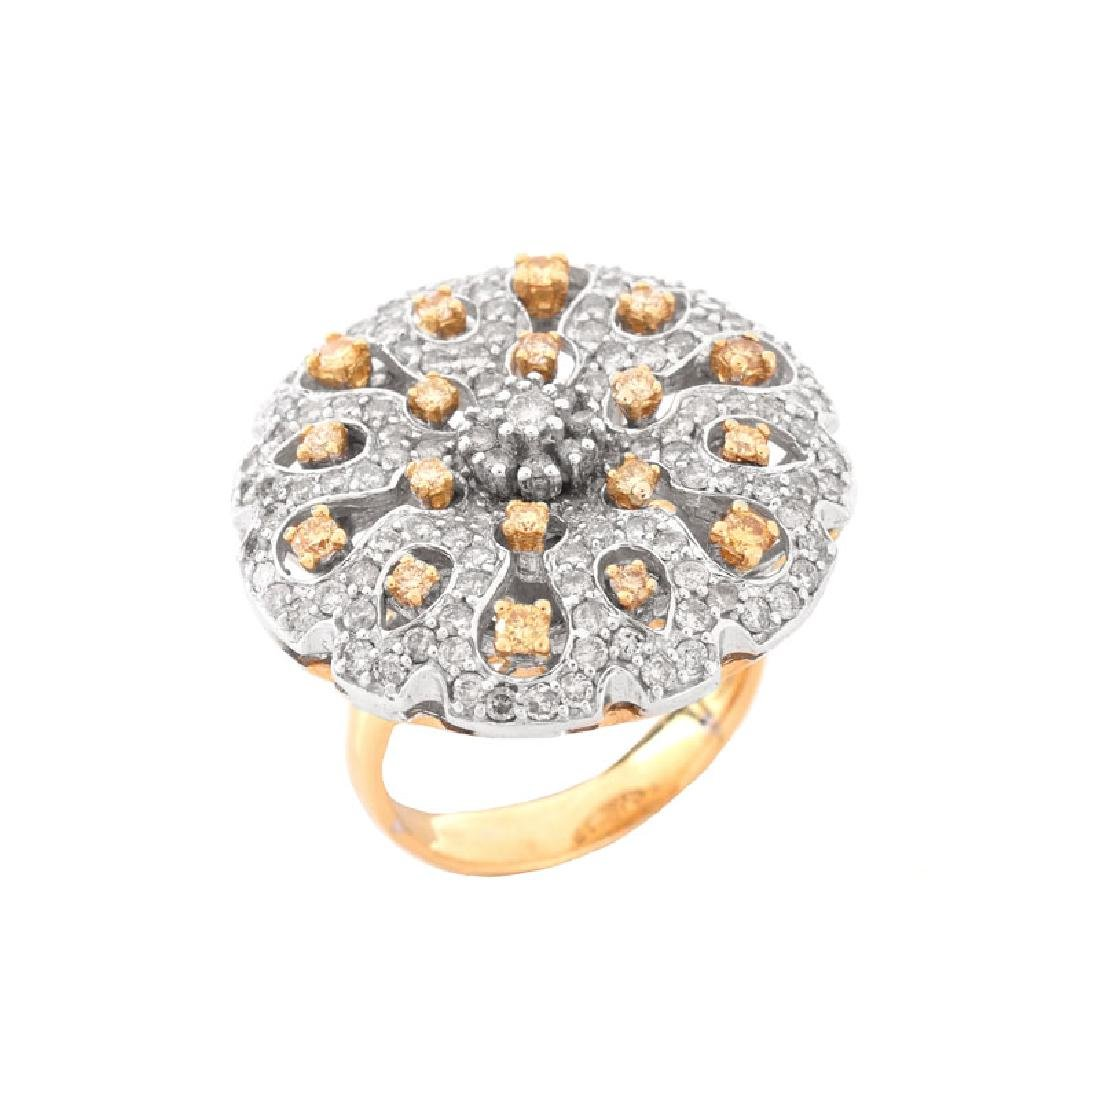 Approx. 1.40 Carat Pave Set Round Brilliant Cut White